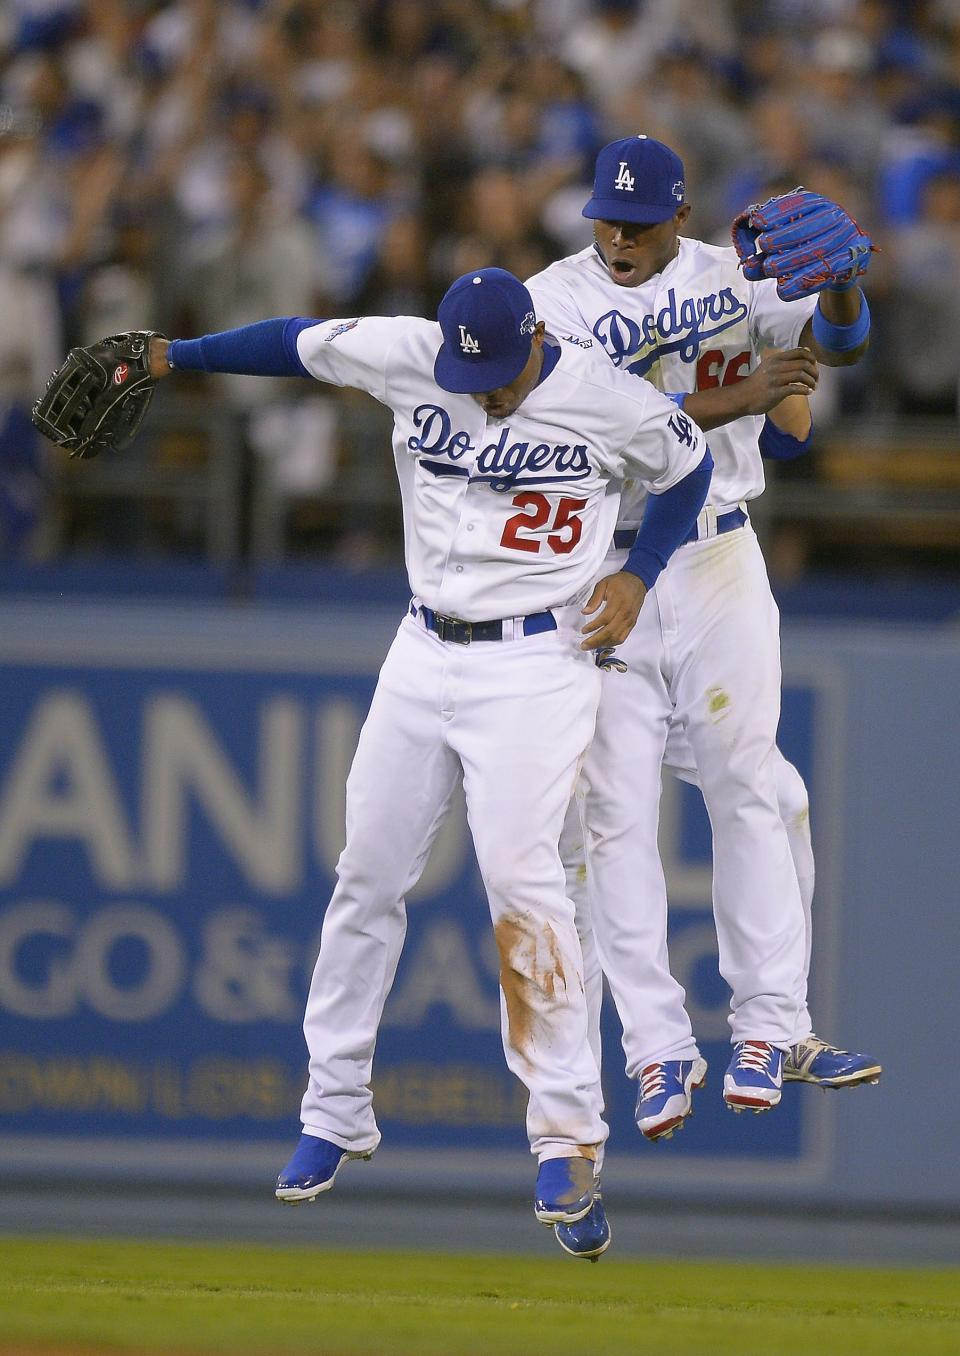 Los Angeles Dodgers' Carl Crawford (25) and Yasiel Puig celebrate after Game 3 of the National League baseball championship series against the St. Louis Cardinals Monday, Oct. 14, 2013, in Los Angeles. The Dodgers beat the Cardinals 3-0 and trail in the series 2-1. (AP Photo/Mark J. Terrill)